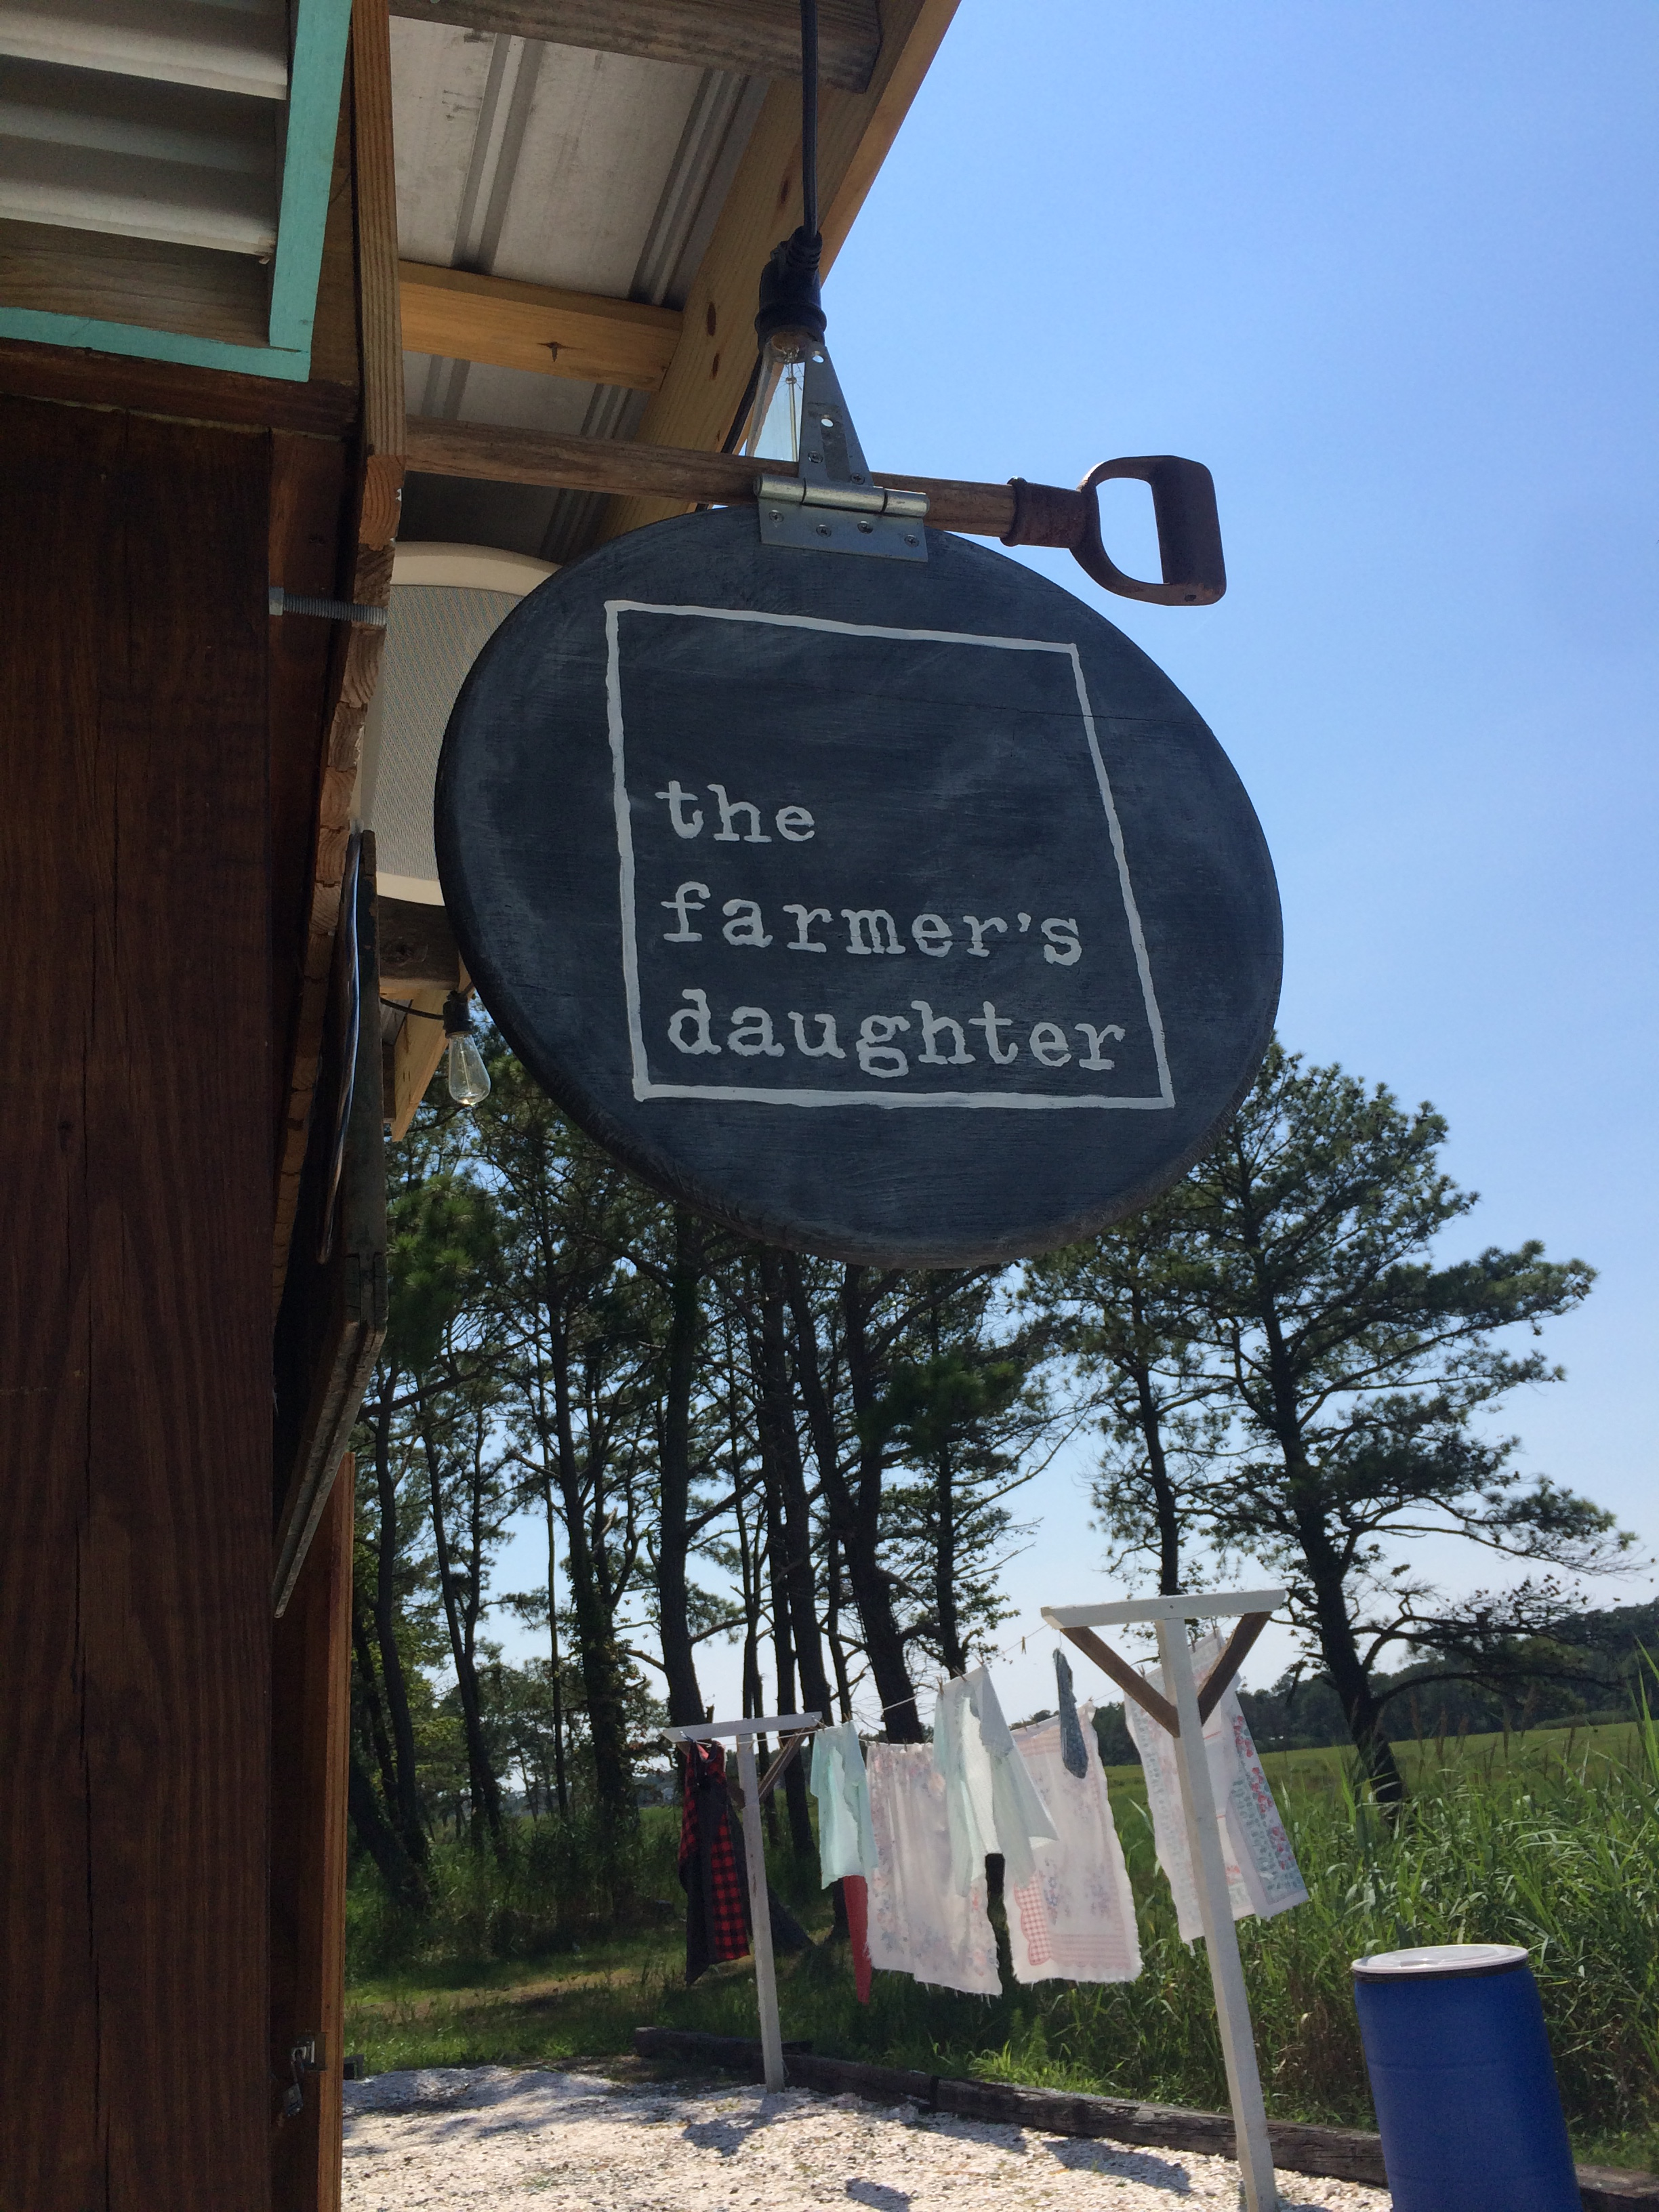 The Farmer's Daughter - Chincoteague Virginia * Once In A Blue Spoon